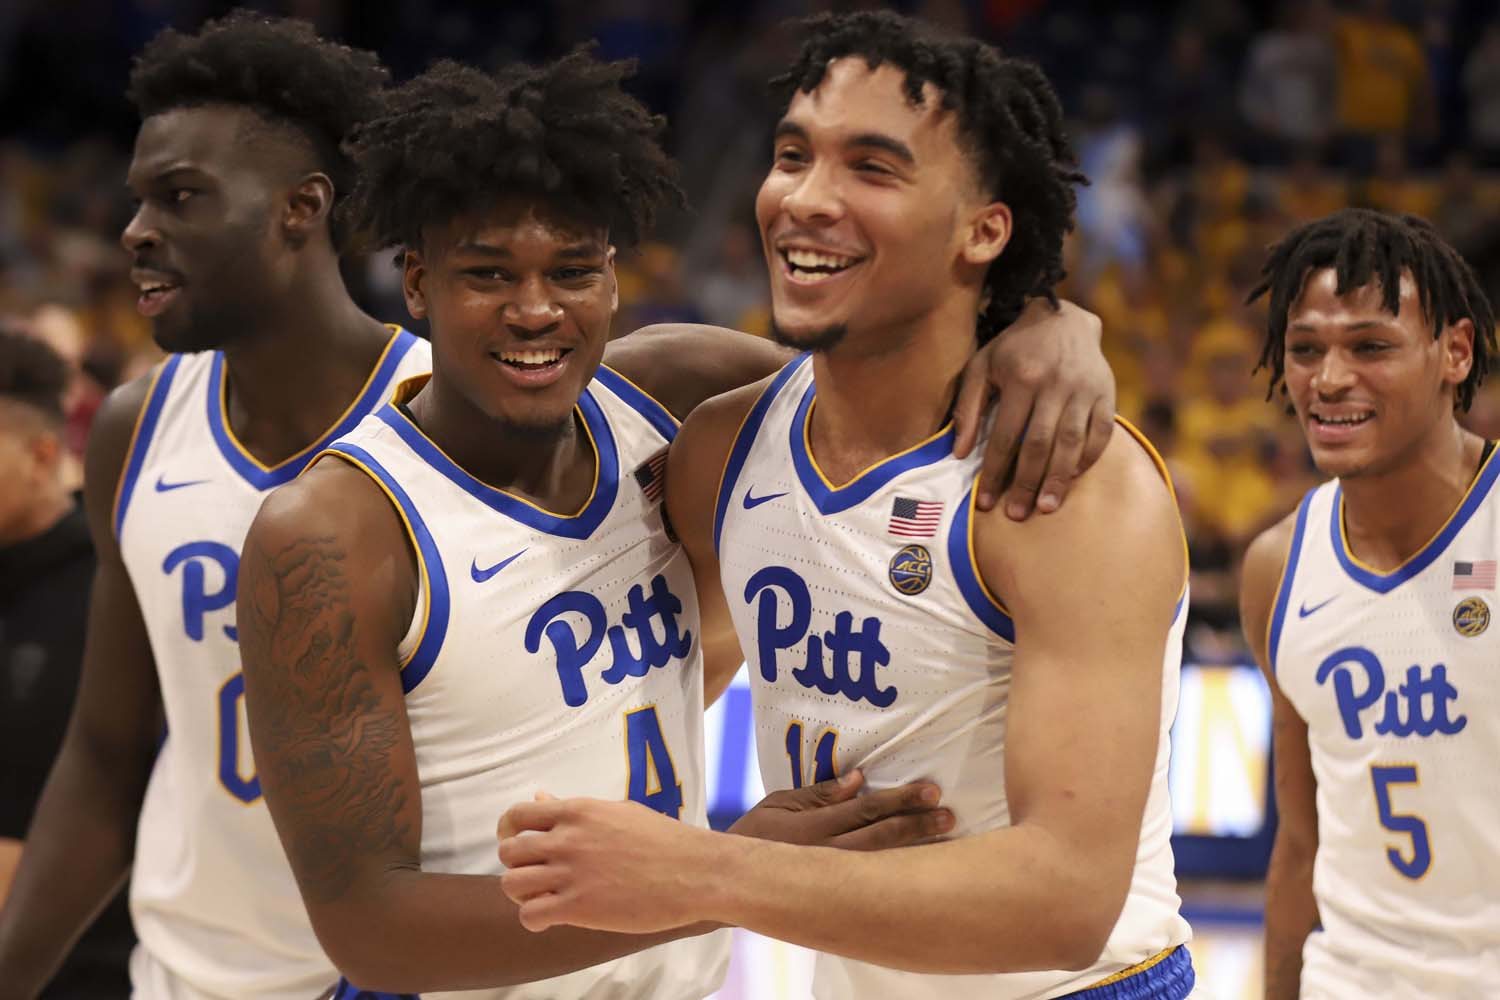 First-year guards Gerald Drumgoole Jr. (4) and Justin Champagnie (11) celebrate after Wednesday's 63-61 victory over Florida State.